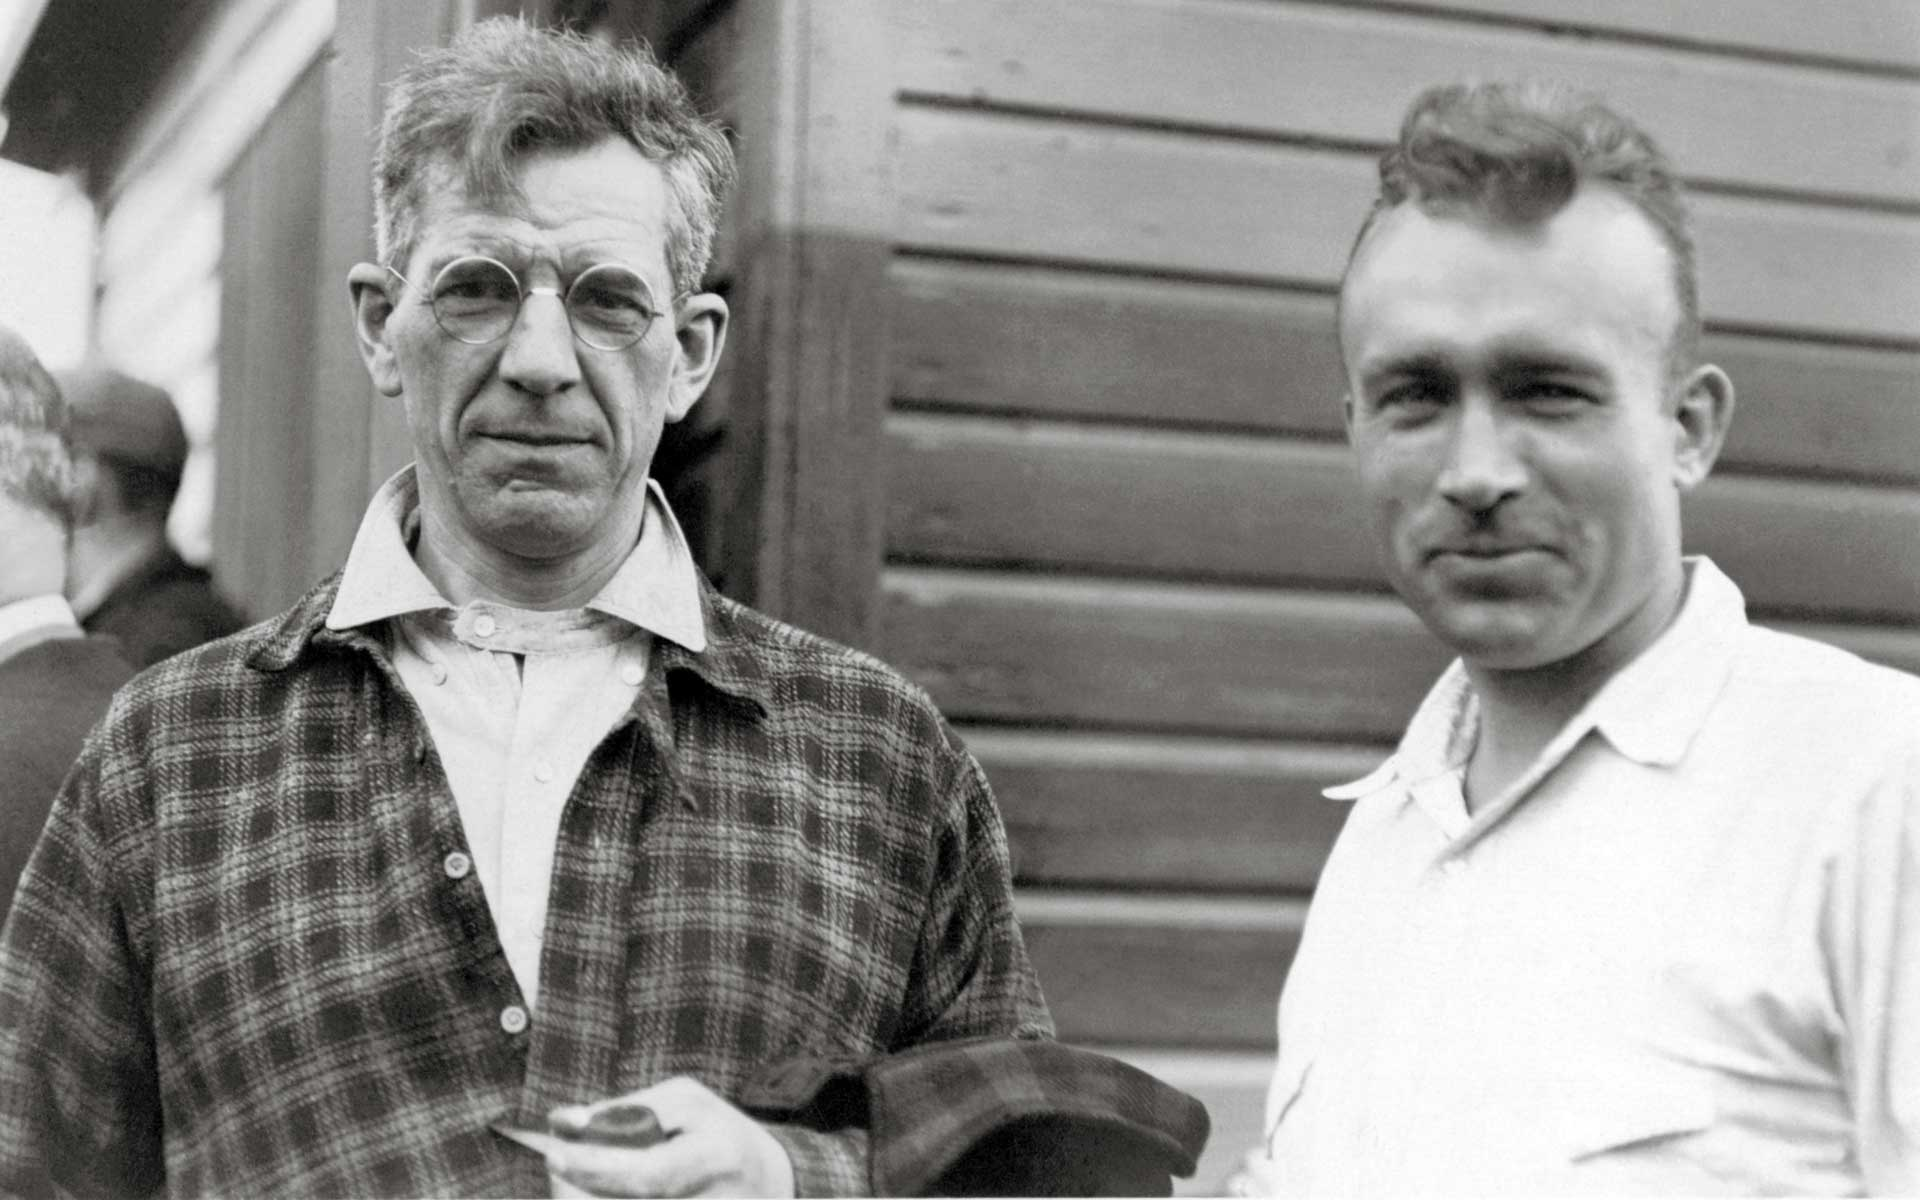 Old photograph: two men standing outside in front of a wood siding wall. At the left, a middle-aged man in plaid wearing round-lensed spectacles. At right, a younger man (30s) in a white collared shirt.